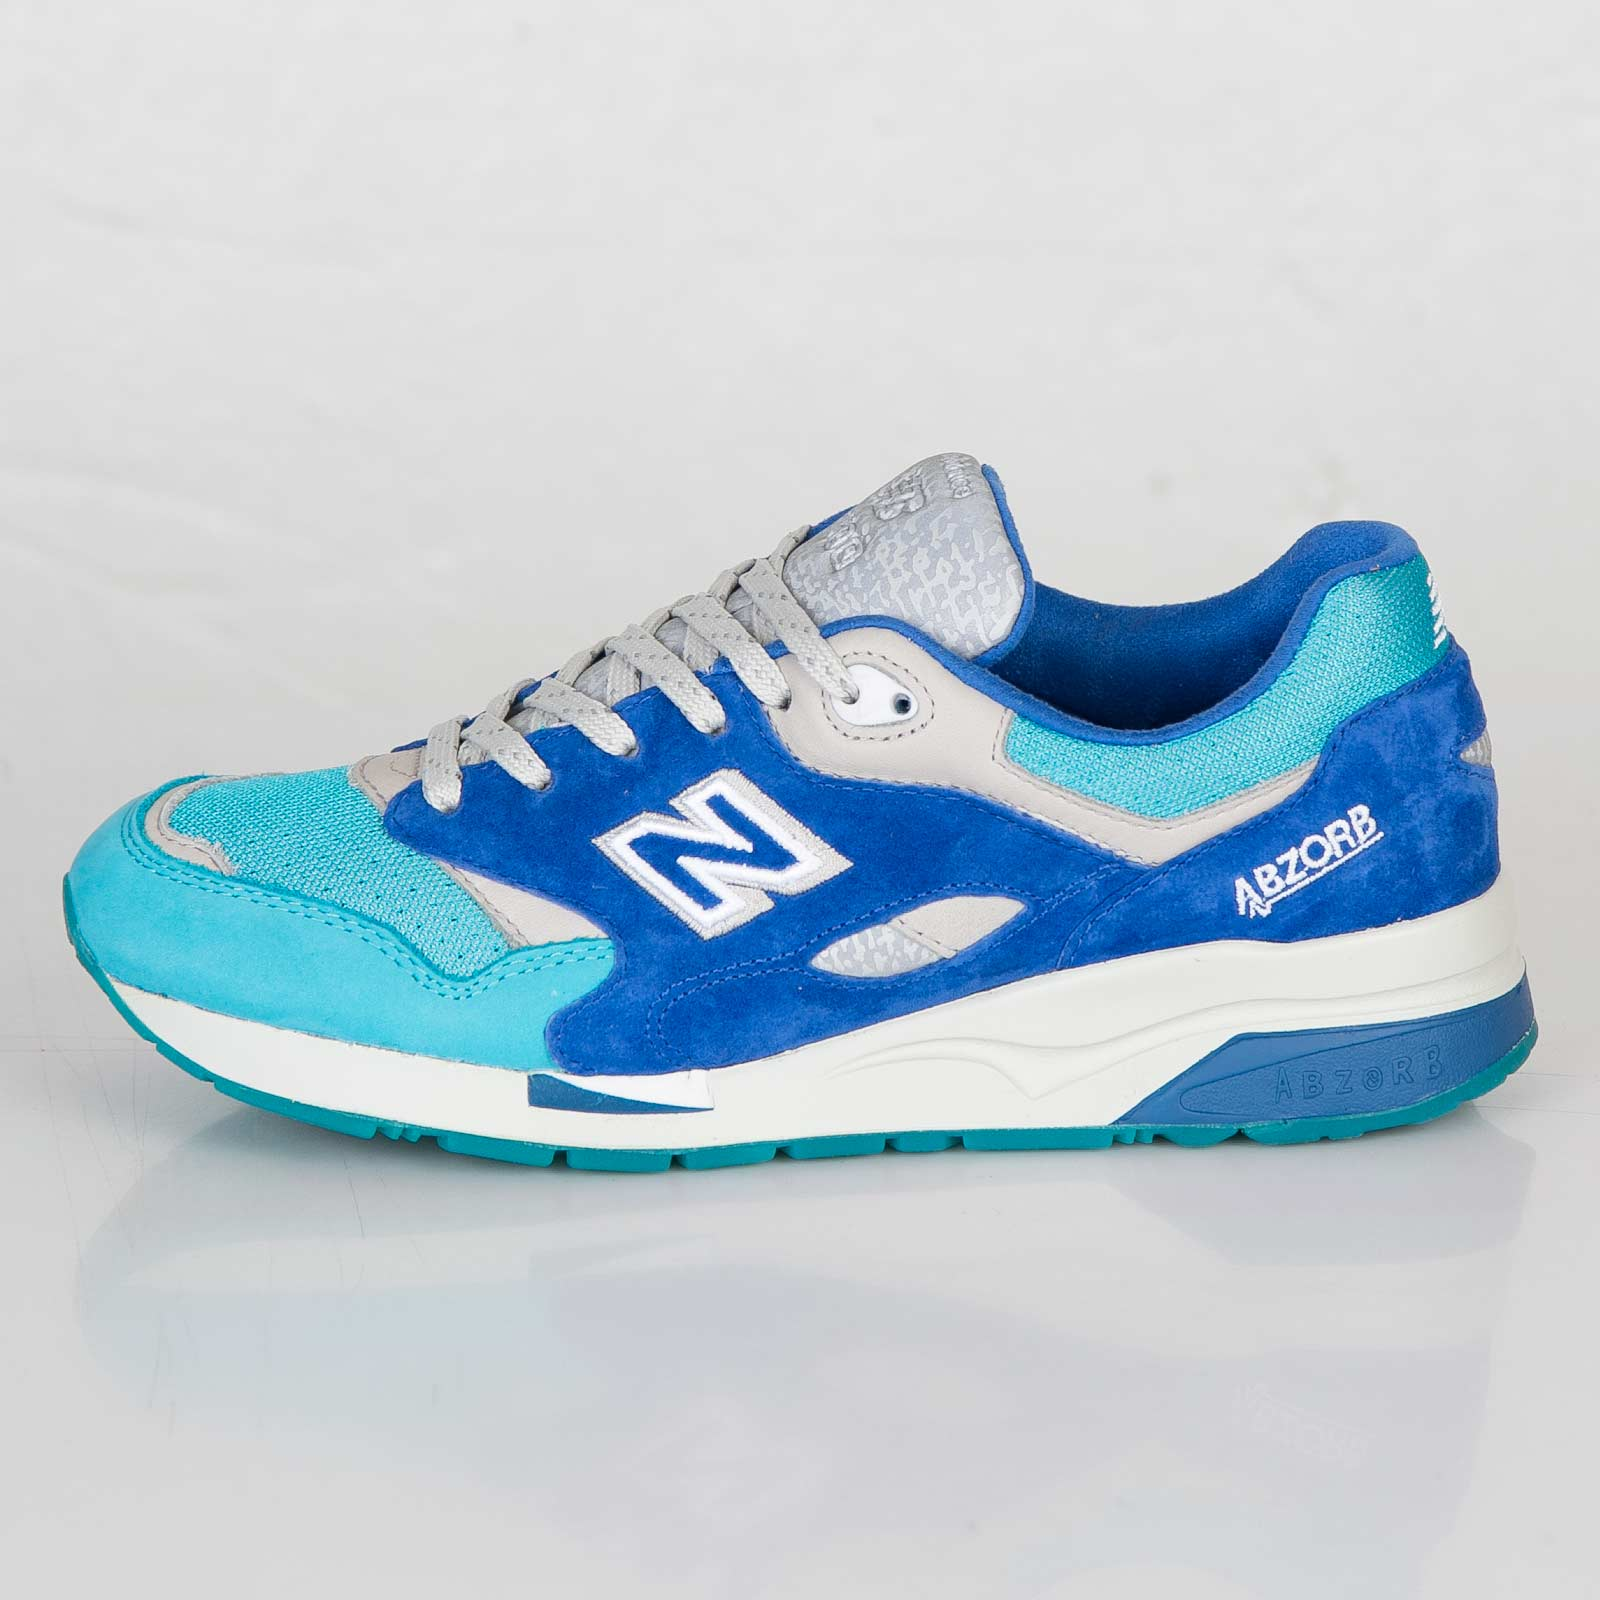 New Balance 1600 x Nice Kicks Grand Anse 2014